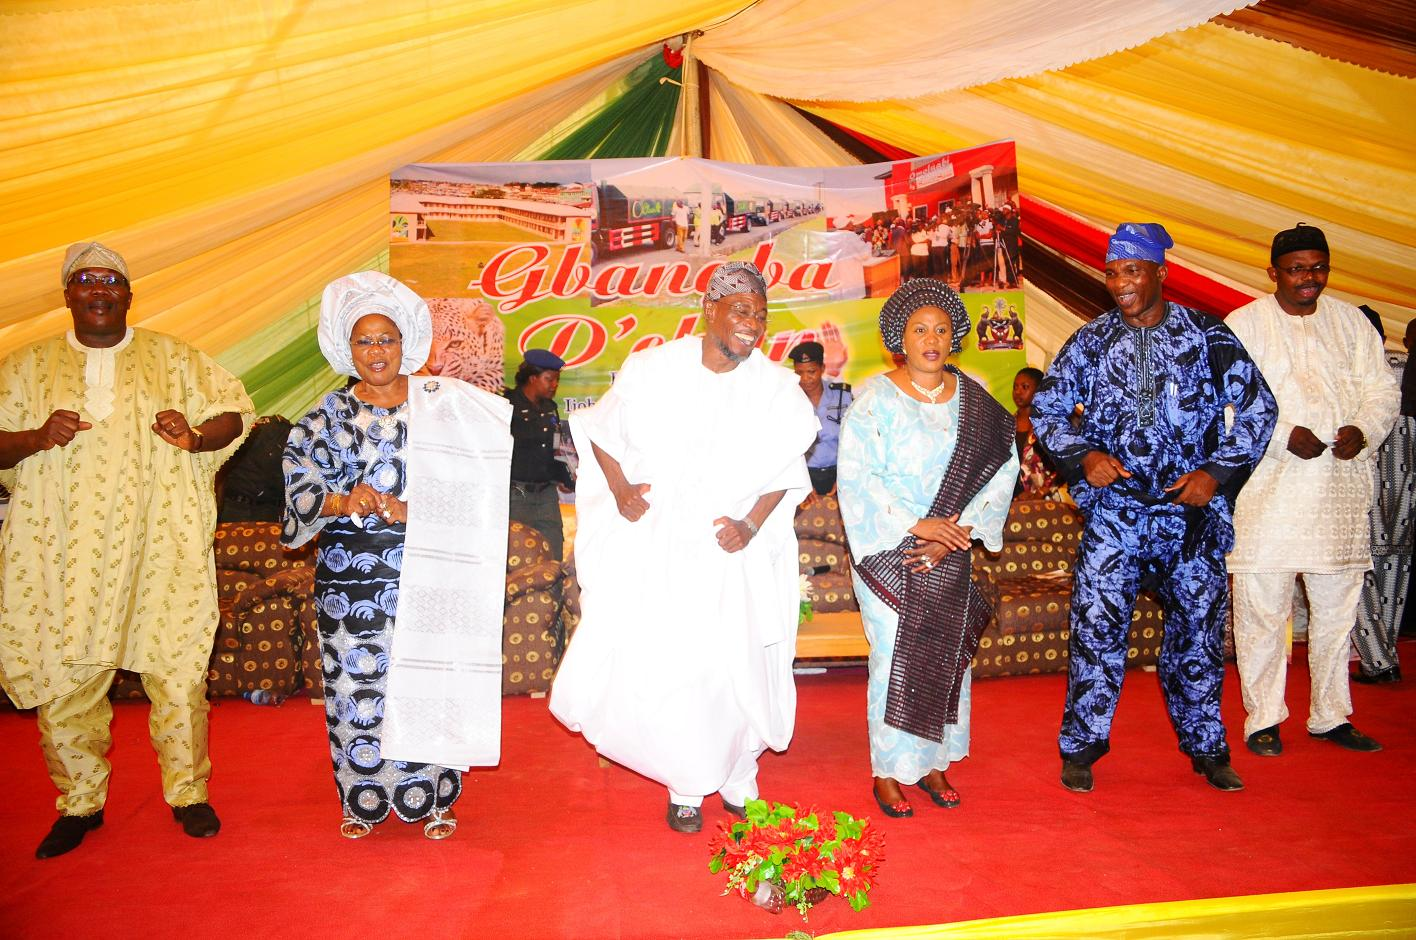 """From left, Speaker State Assembly of Osun, Honourable Najeem Salam; Deputy Governor State of Osun, Mrs Titi Laoye-Tomori; Governor, Ogbeni Rauf Aregbesola; his Wife, Sherifat;  Secretary to the State Government of Osun, Alhaji Moshood Adeoti and Member House of Representatives representing Atakunmosa East/West and Ilesa East/West, Honourable Ajibola Famurewa, after words of support for Aregbesola Second Term in office by people of Ijeshaland, during the 6th edition of an interactive programme tagged, """"Gban-gba Dekun"""" in Ijesha South Federal Constituency consisting of Ilesa West, Ilesa East, Atakumosa East and Atakumosa West Local Governments at Ilesa High School, Ilesa, State of Osun last week"""